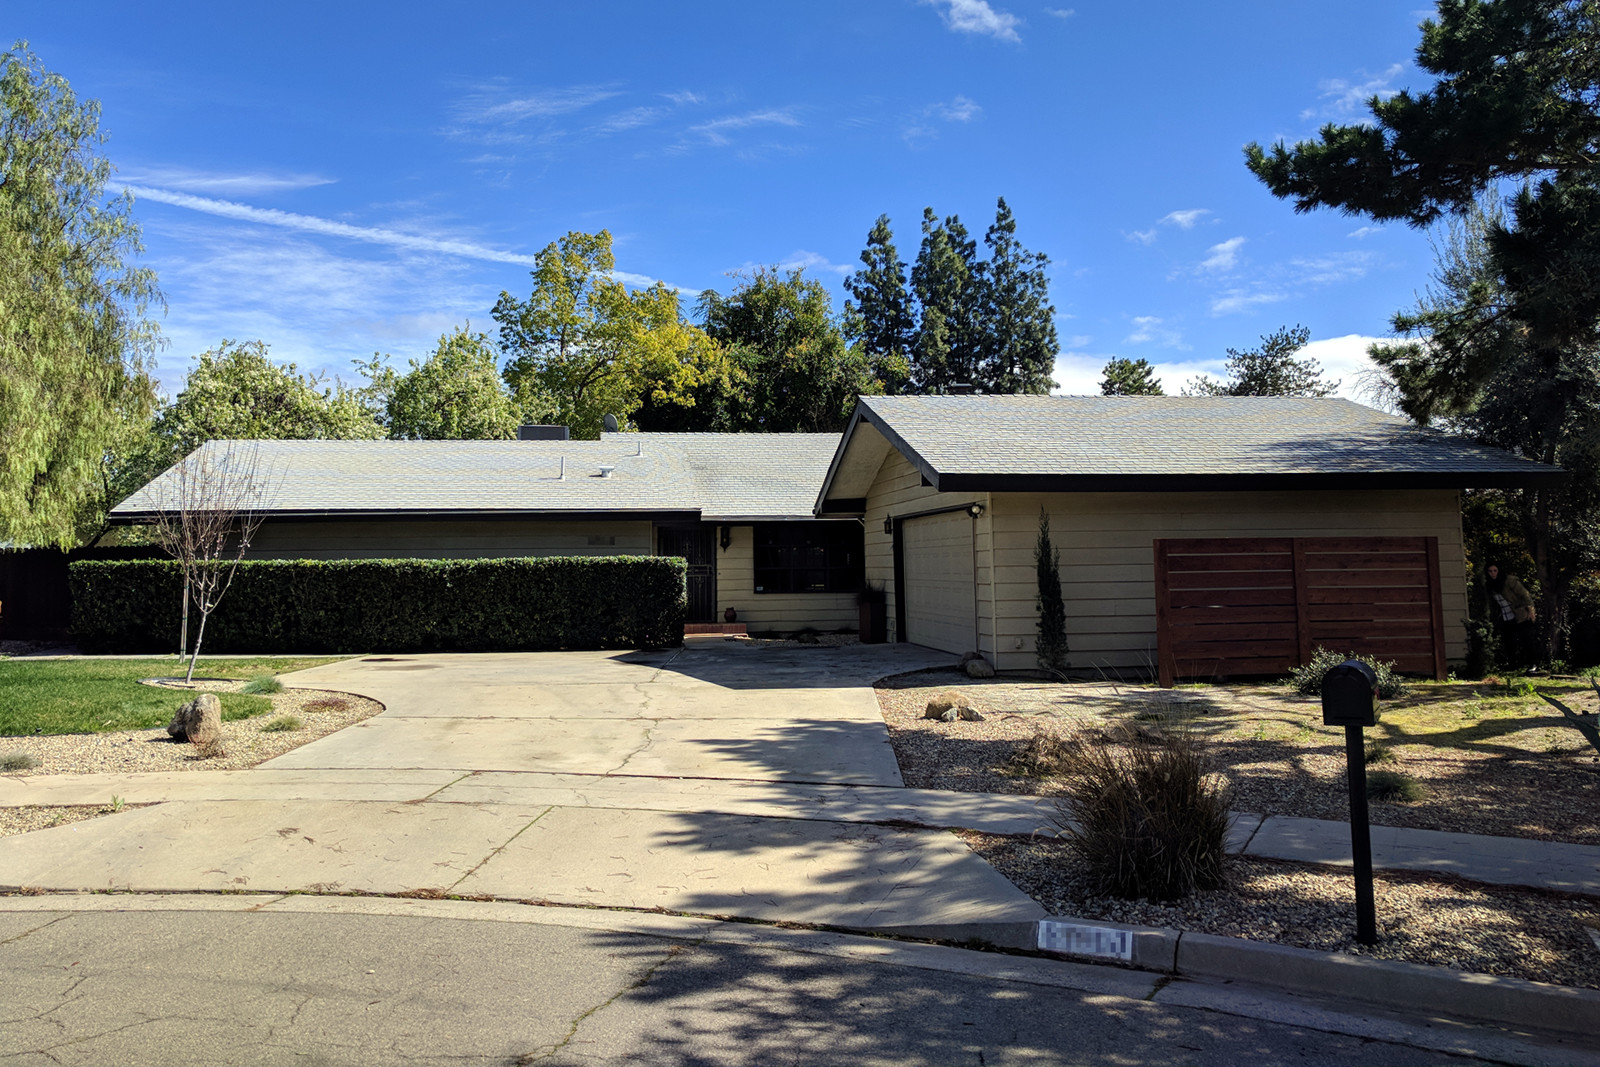 The house we bought in Fresno